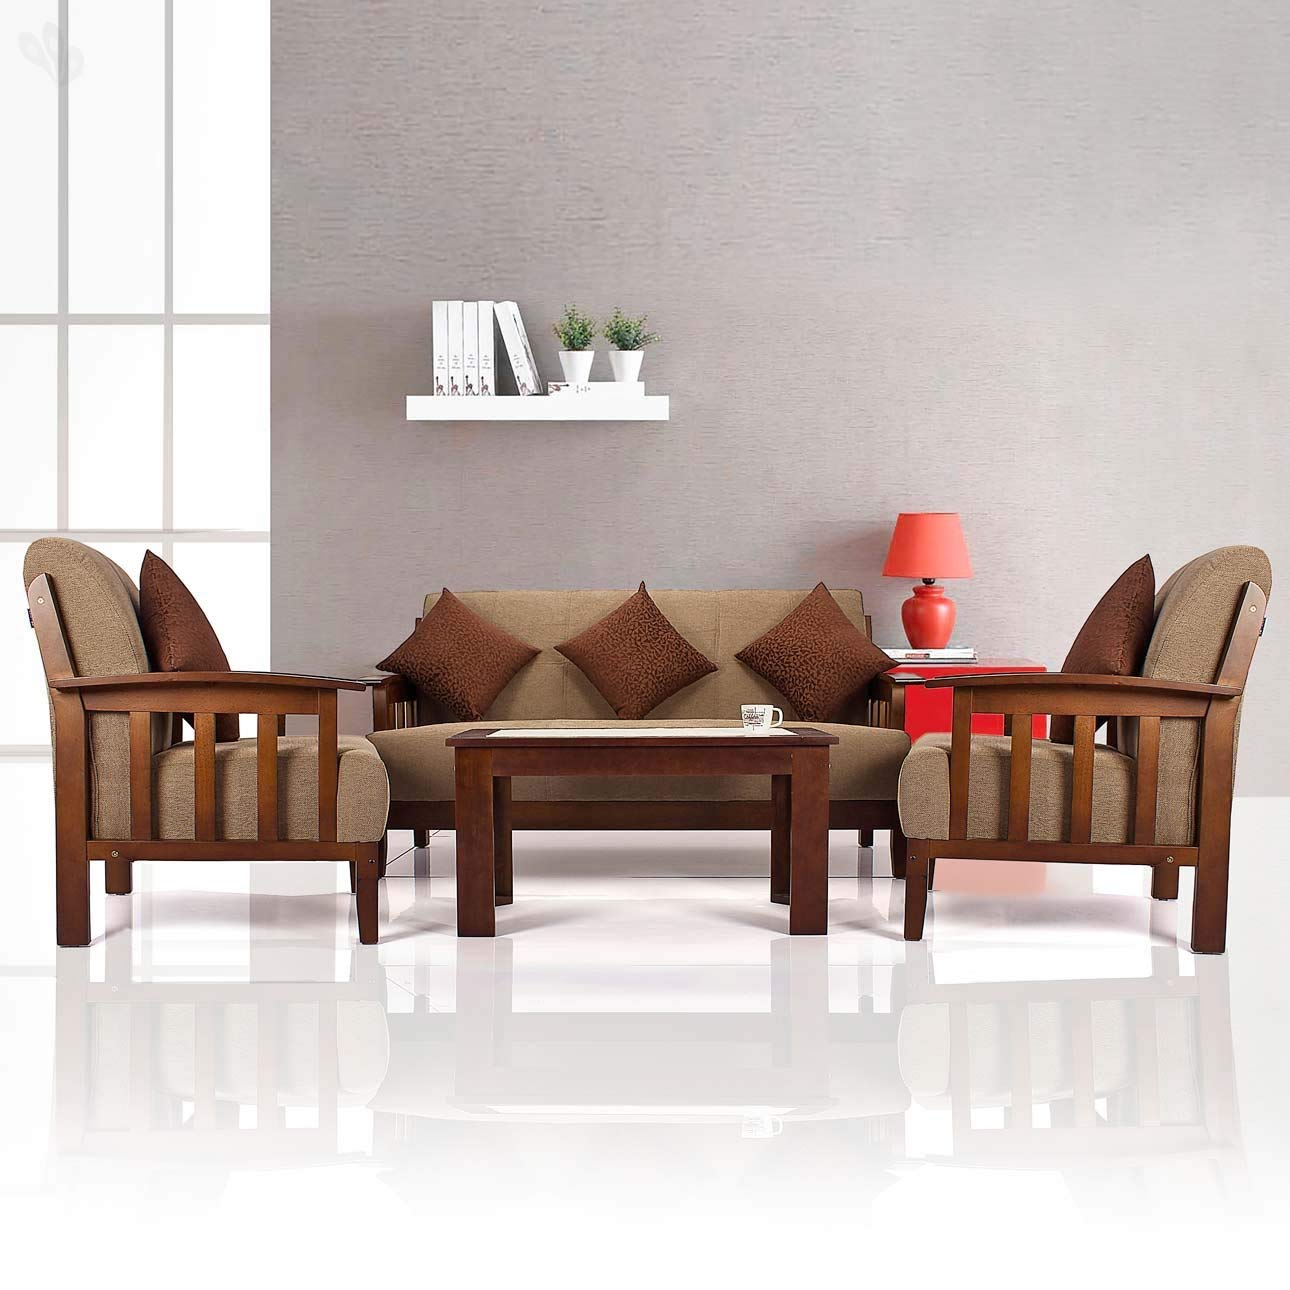 Fuzpol Sheesham Wood 3+1+1 Seater Sofa Set with Cushion for Living Room